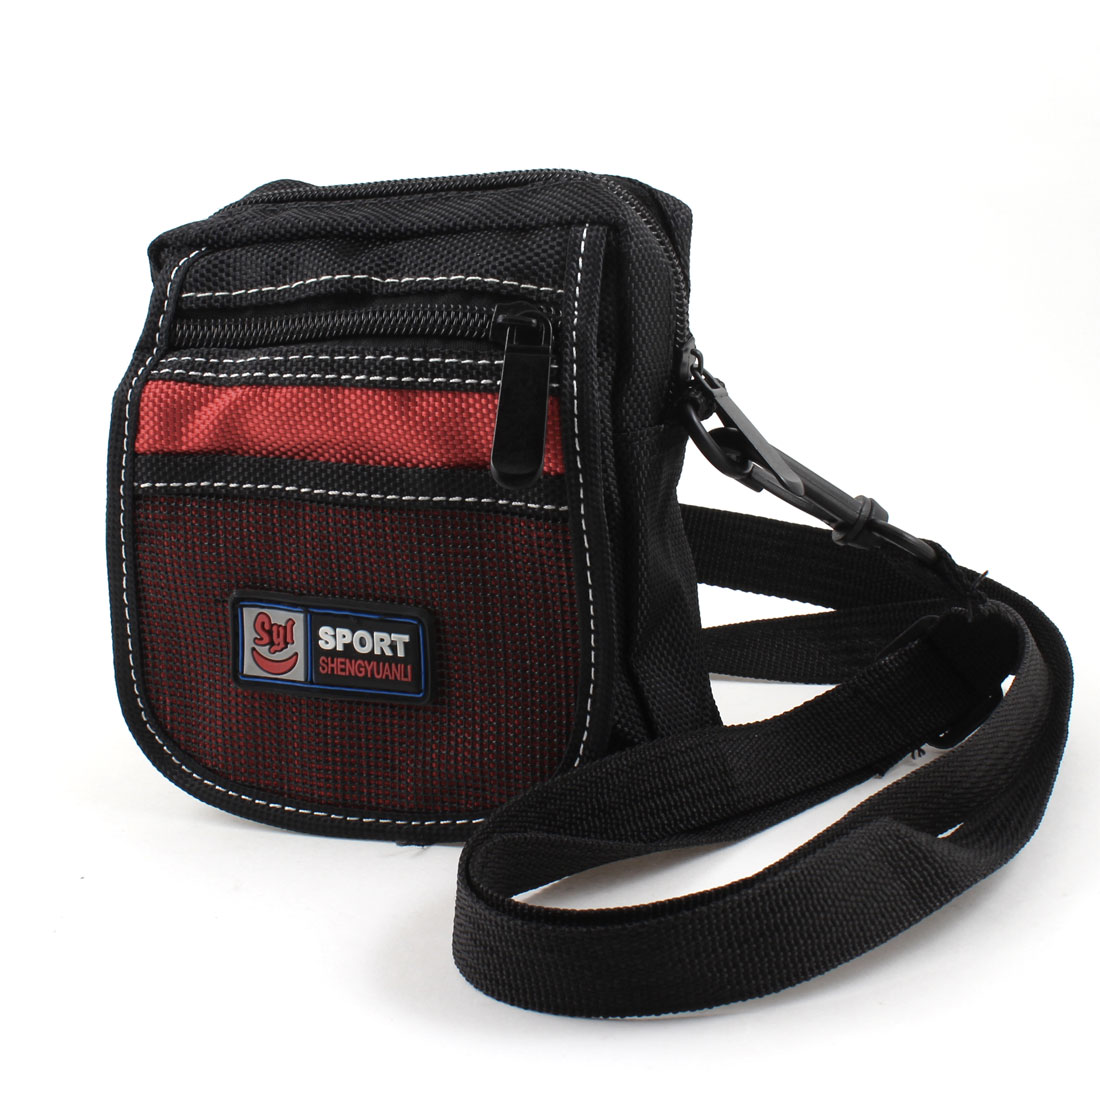 Man Black Red Nylon 3 Pockets Adjustable Strap Waist Bag Pouch